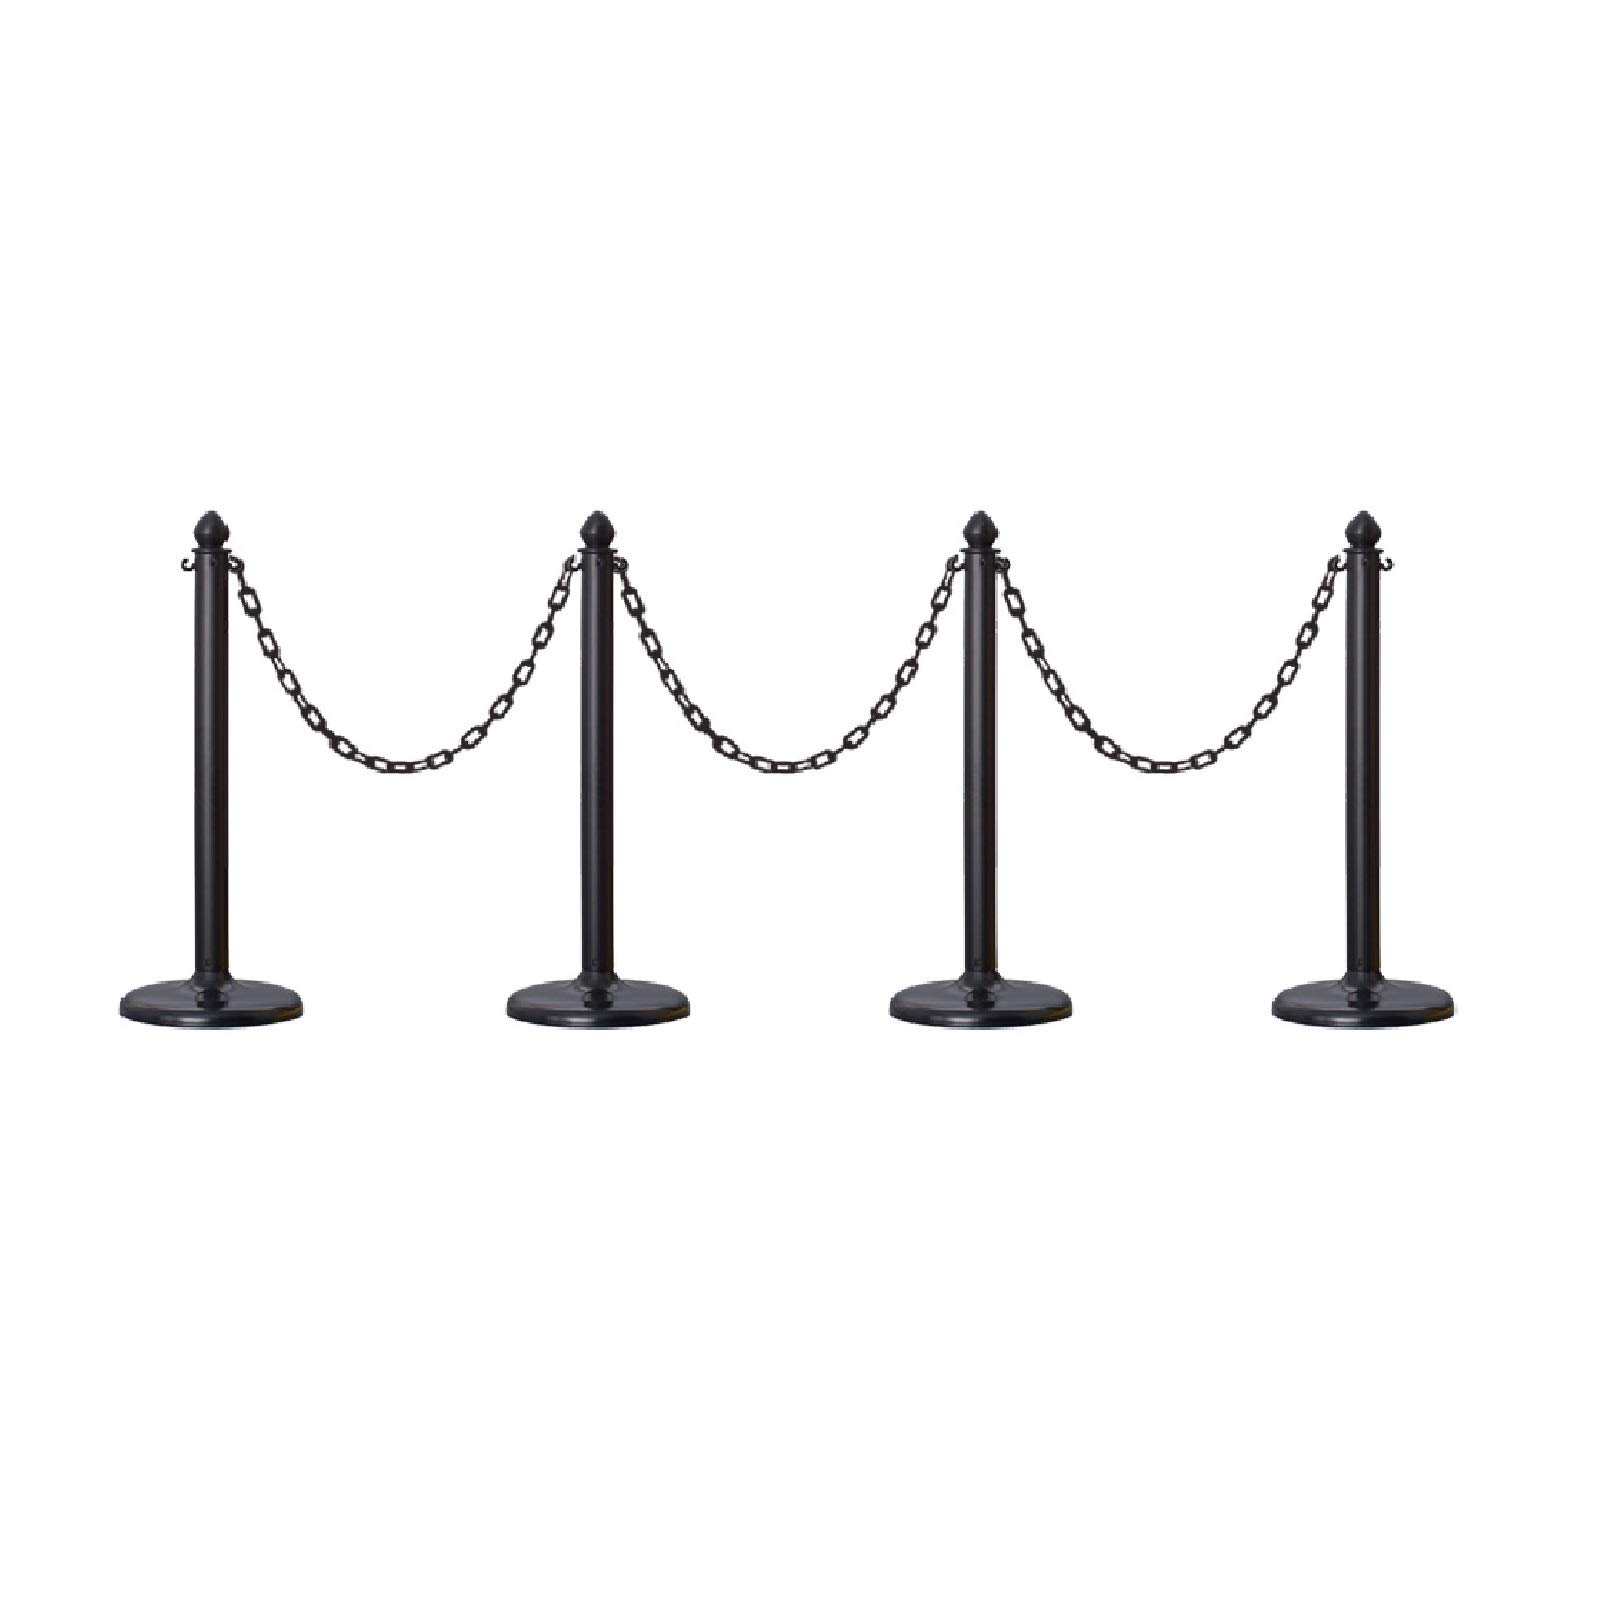 Plastic Safety Queue Stanchion Barrier Set with 32' Chain 4 PCS and C-Hook (Black) by Crowd Control Center